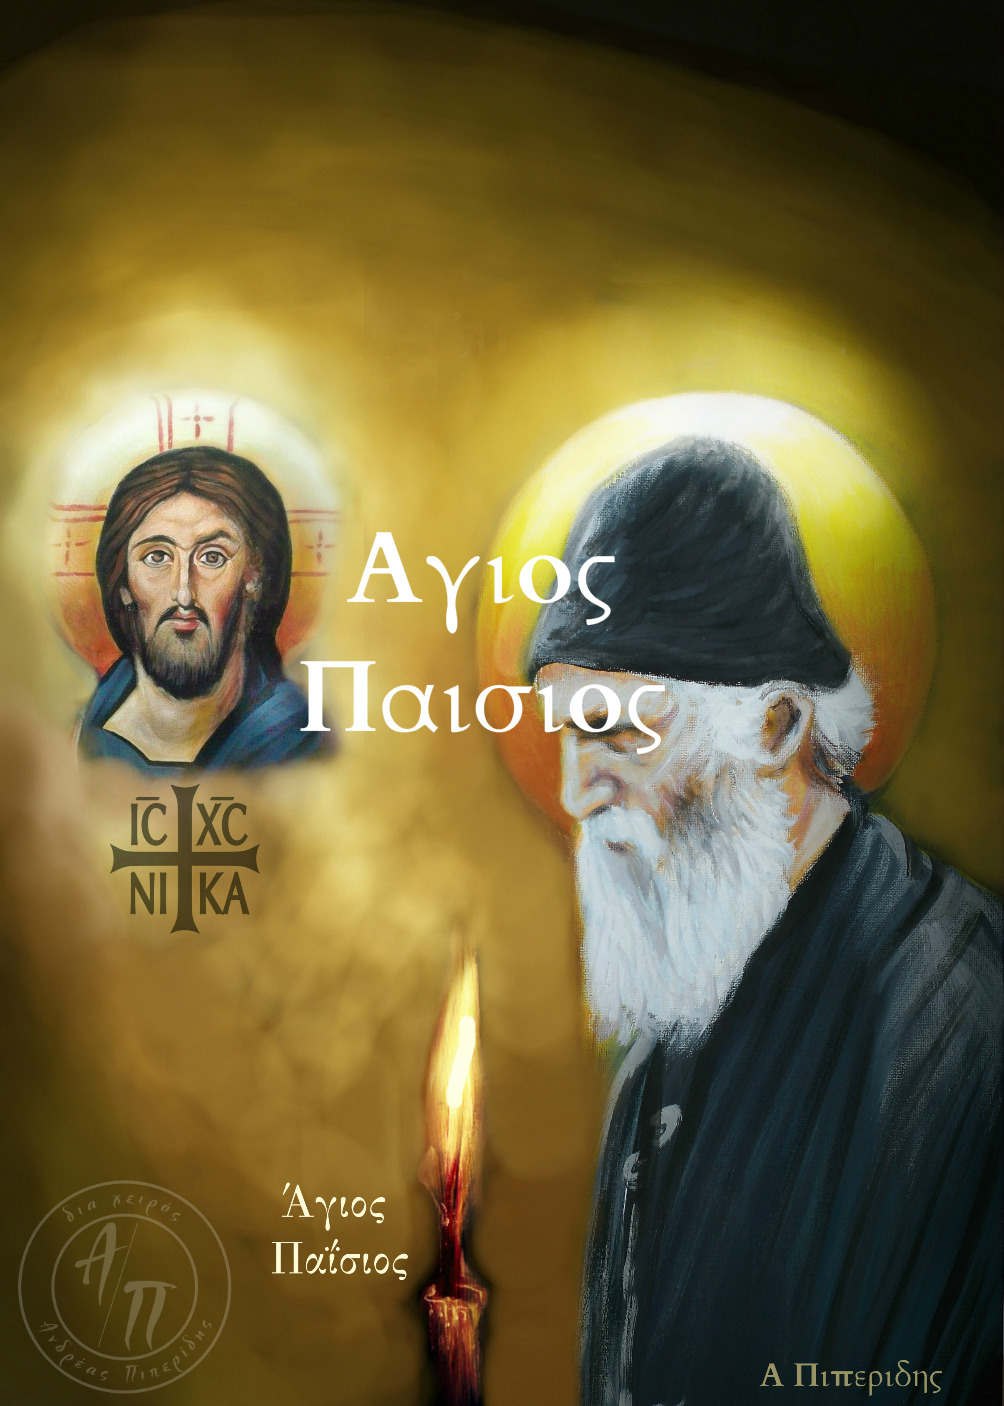 Icons and Paintings by the Greek Master Andreas Piperidis